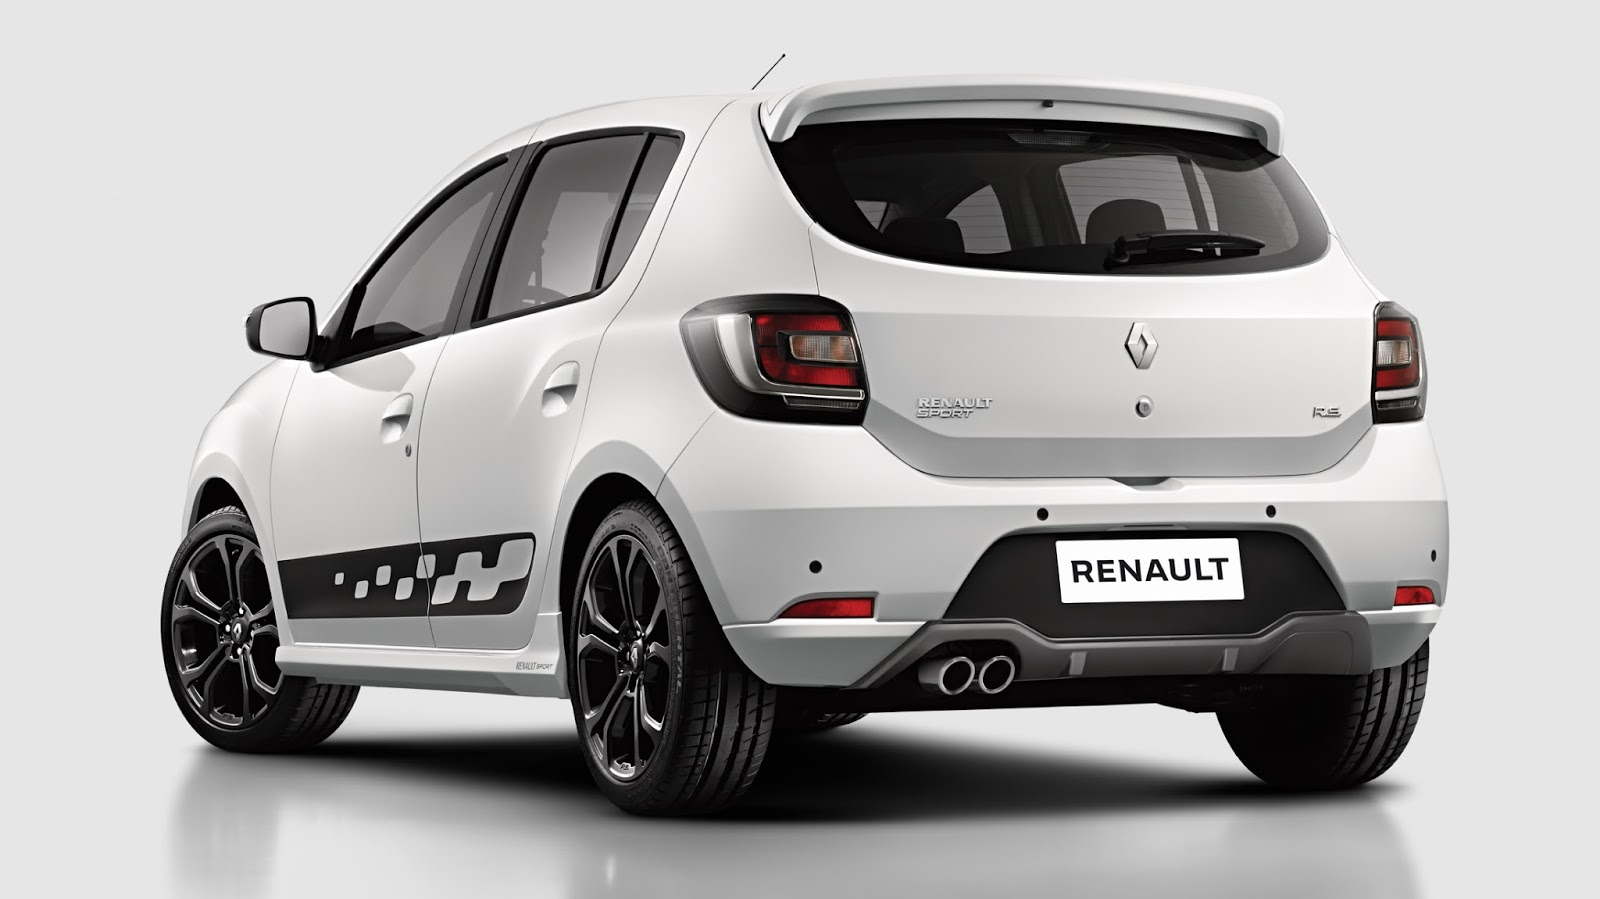 lanzamiento renault sandero r s 2 0 autoblog uruguay. Black Bedroom Furniture Sets. Home Design Ideas